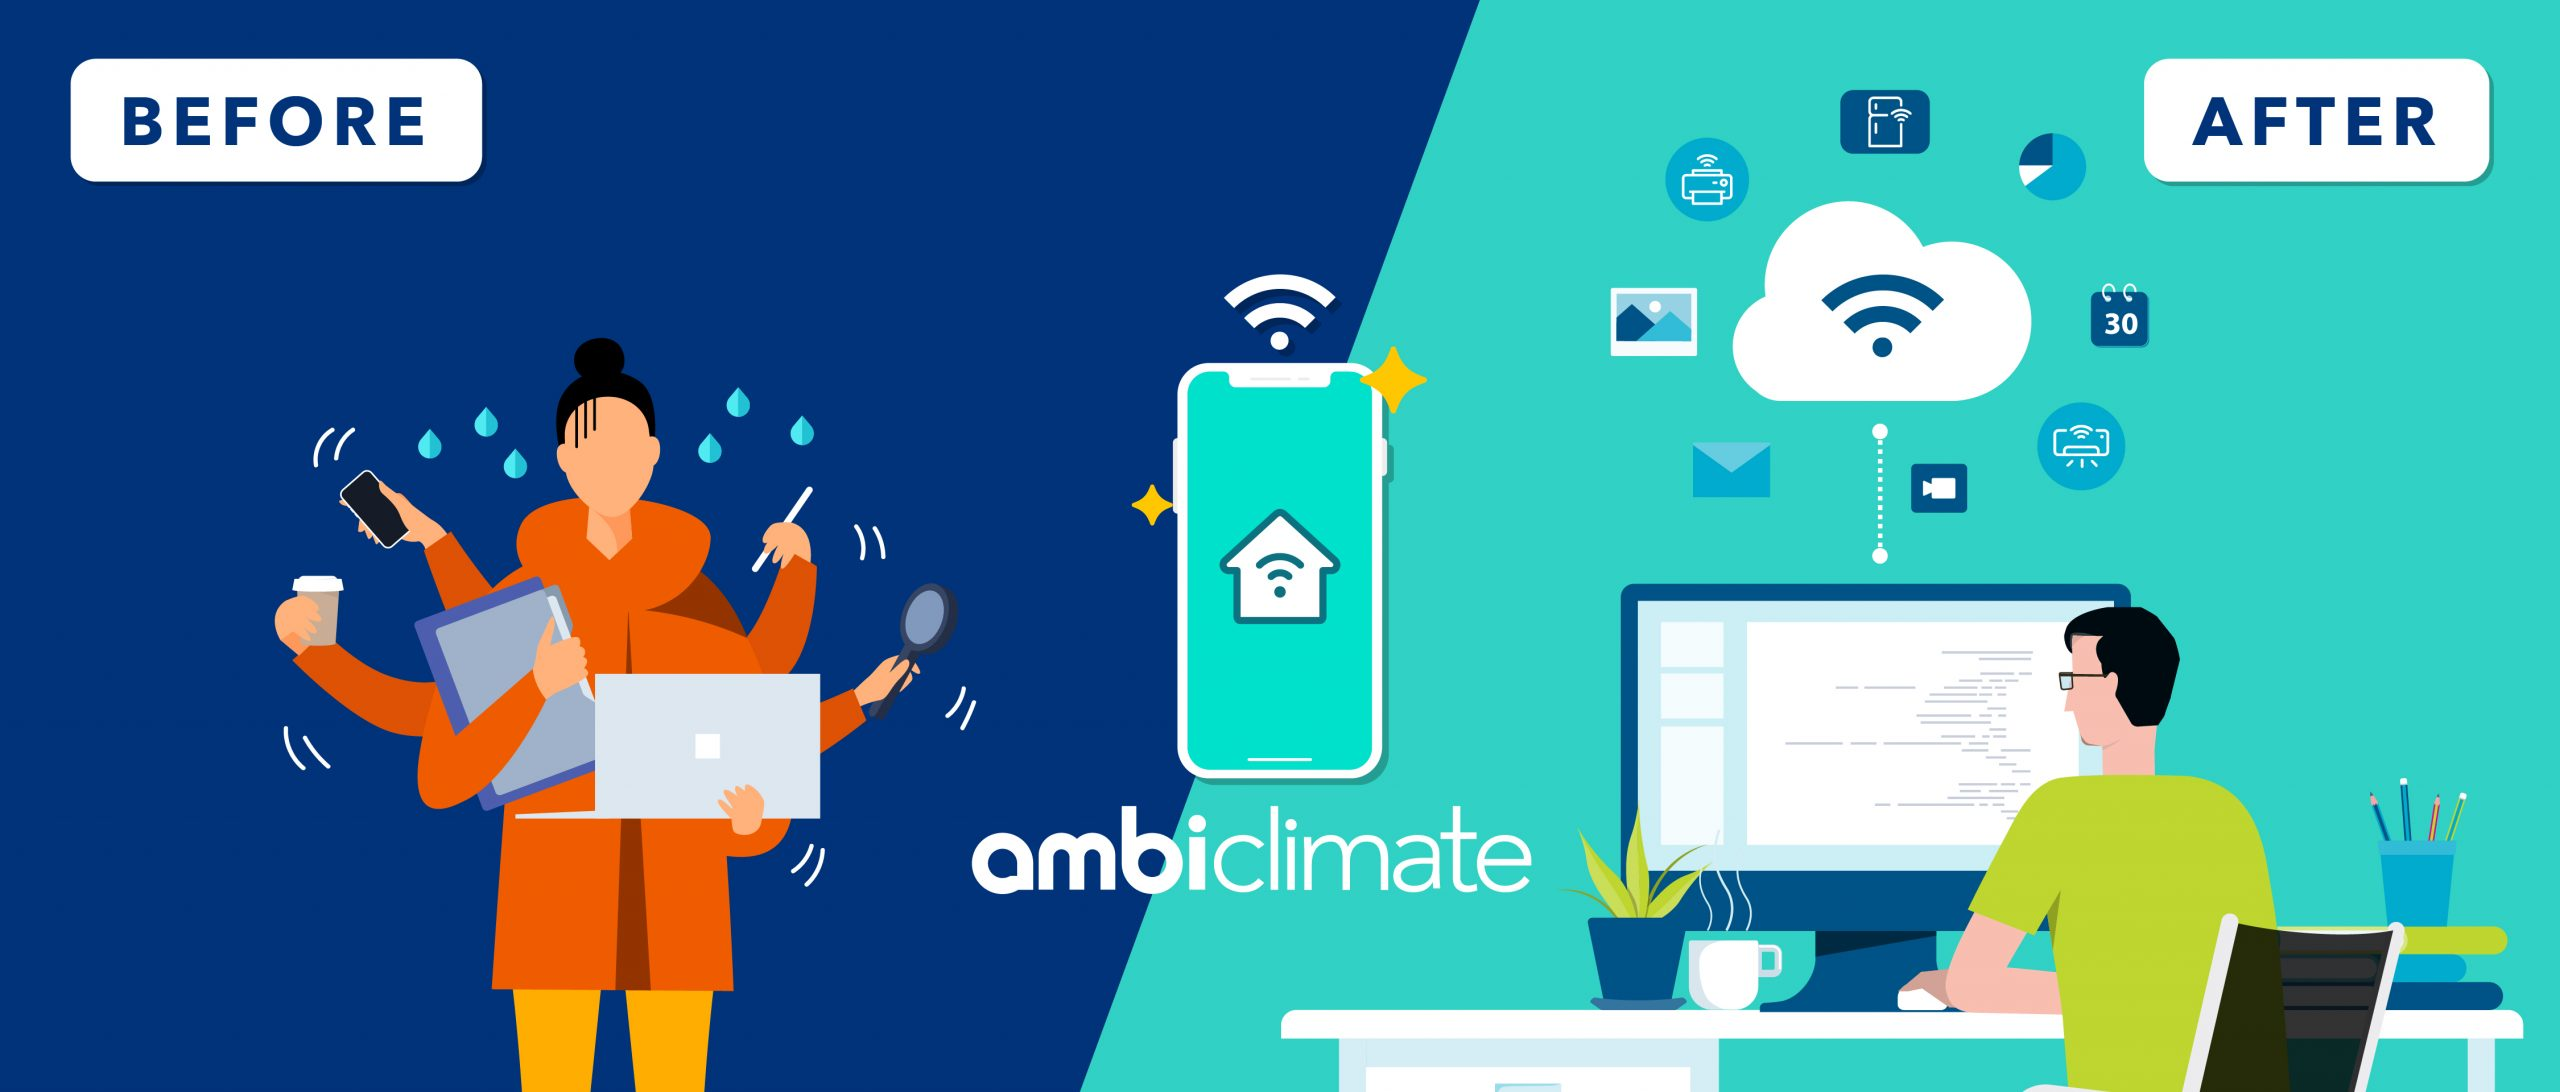 Smart Home Simplified: How to Make Your Home Smarter In 2021